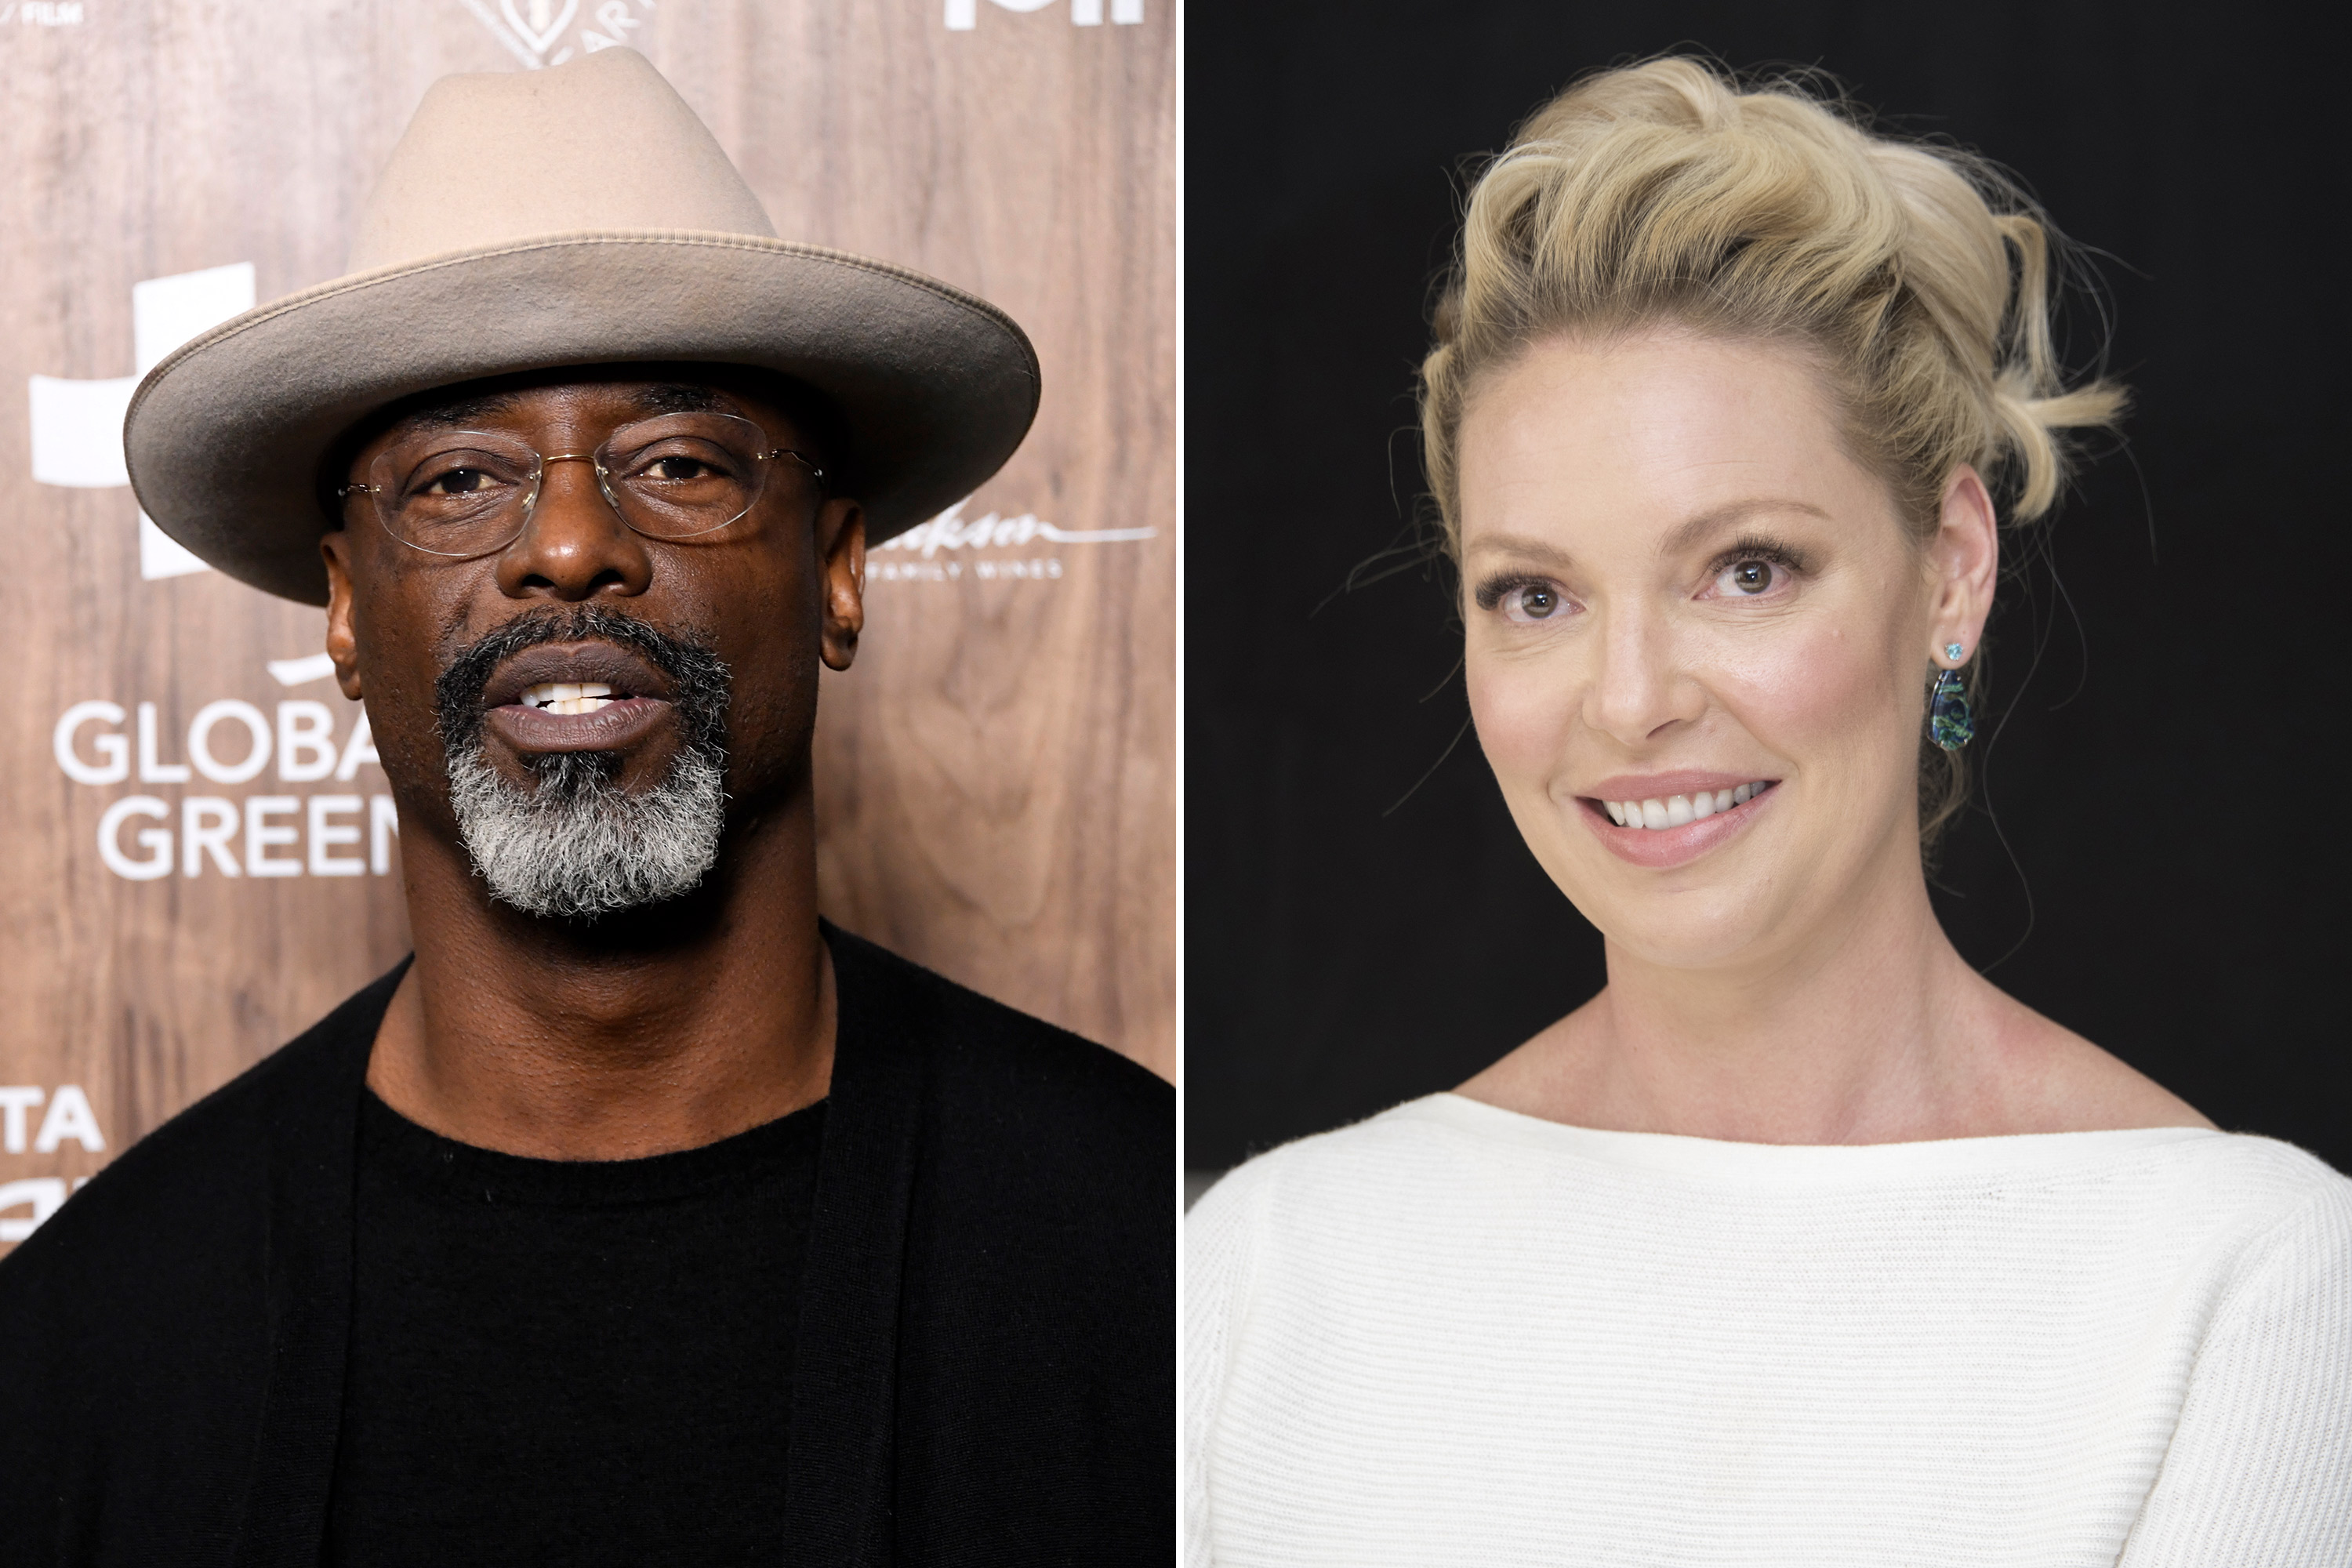 Isaiah Washington slams ex-'Grey's Anatomy' co-star Katherine Heigl